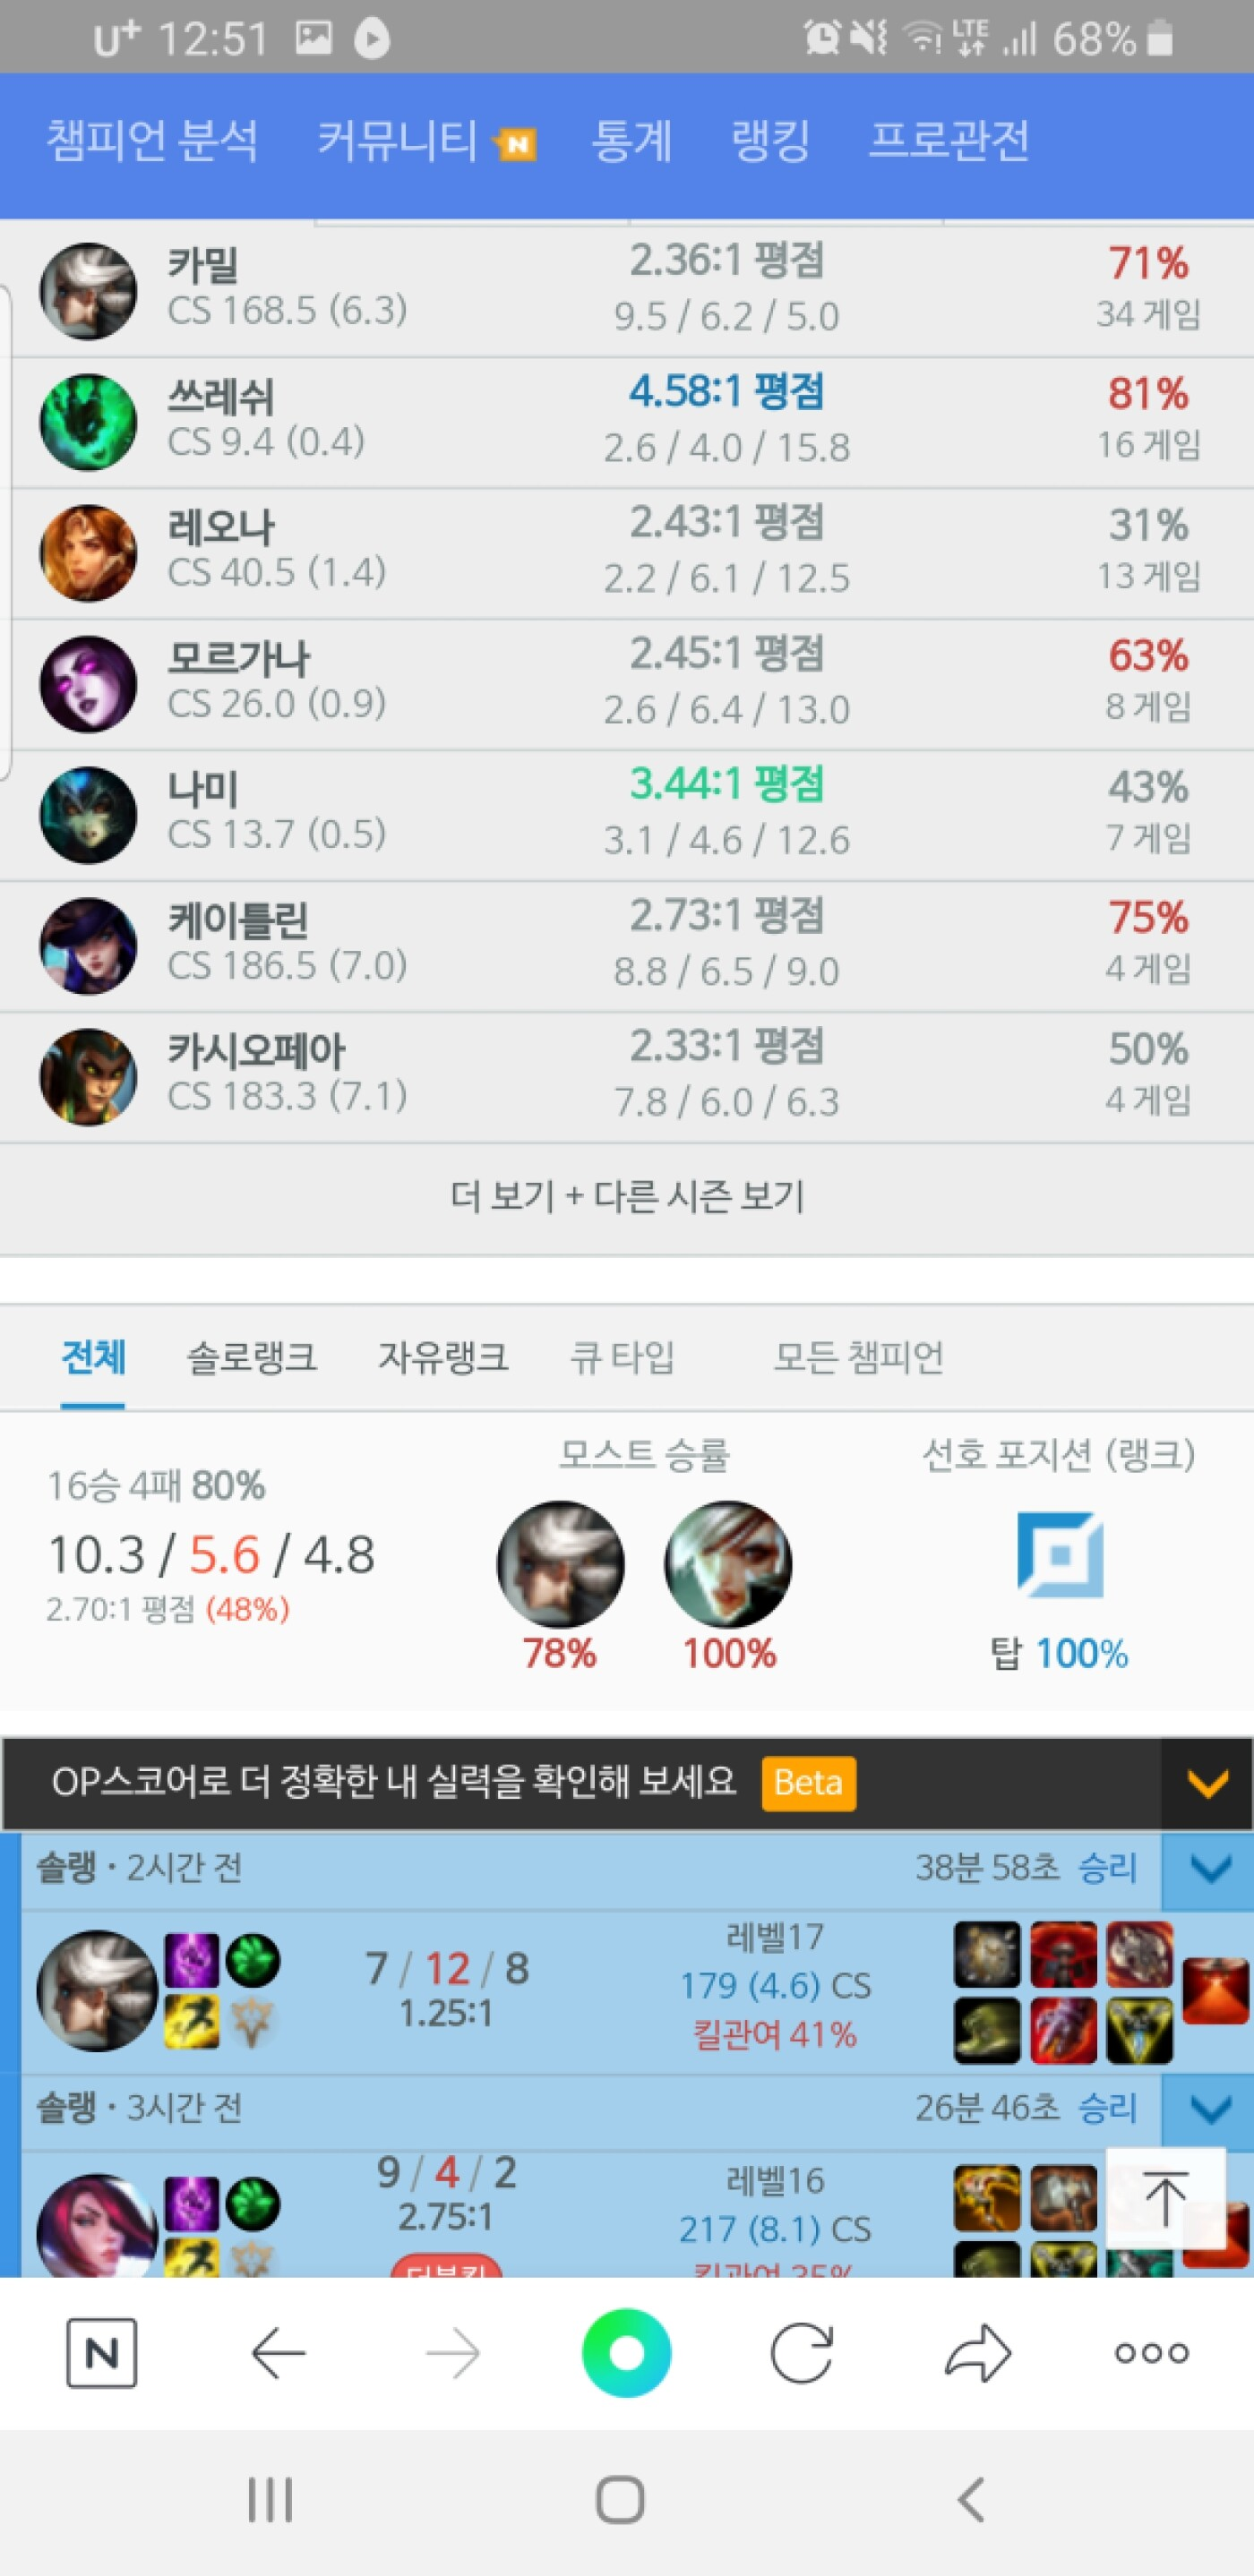 Screenshot_20191005-125114_NAVER.jpg